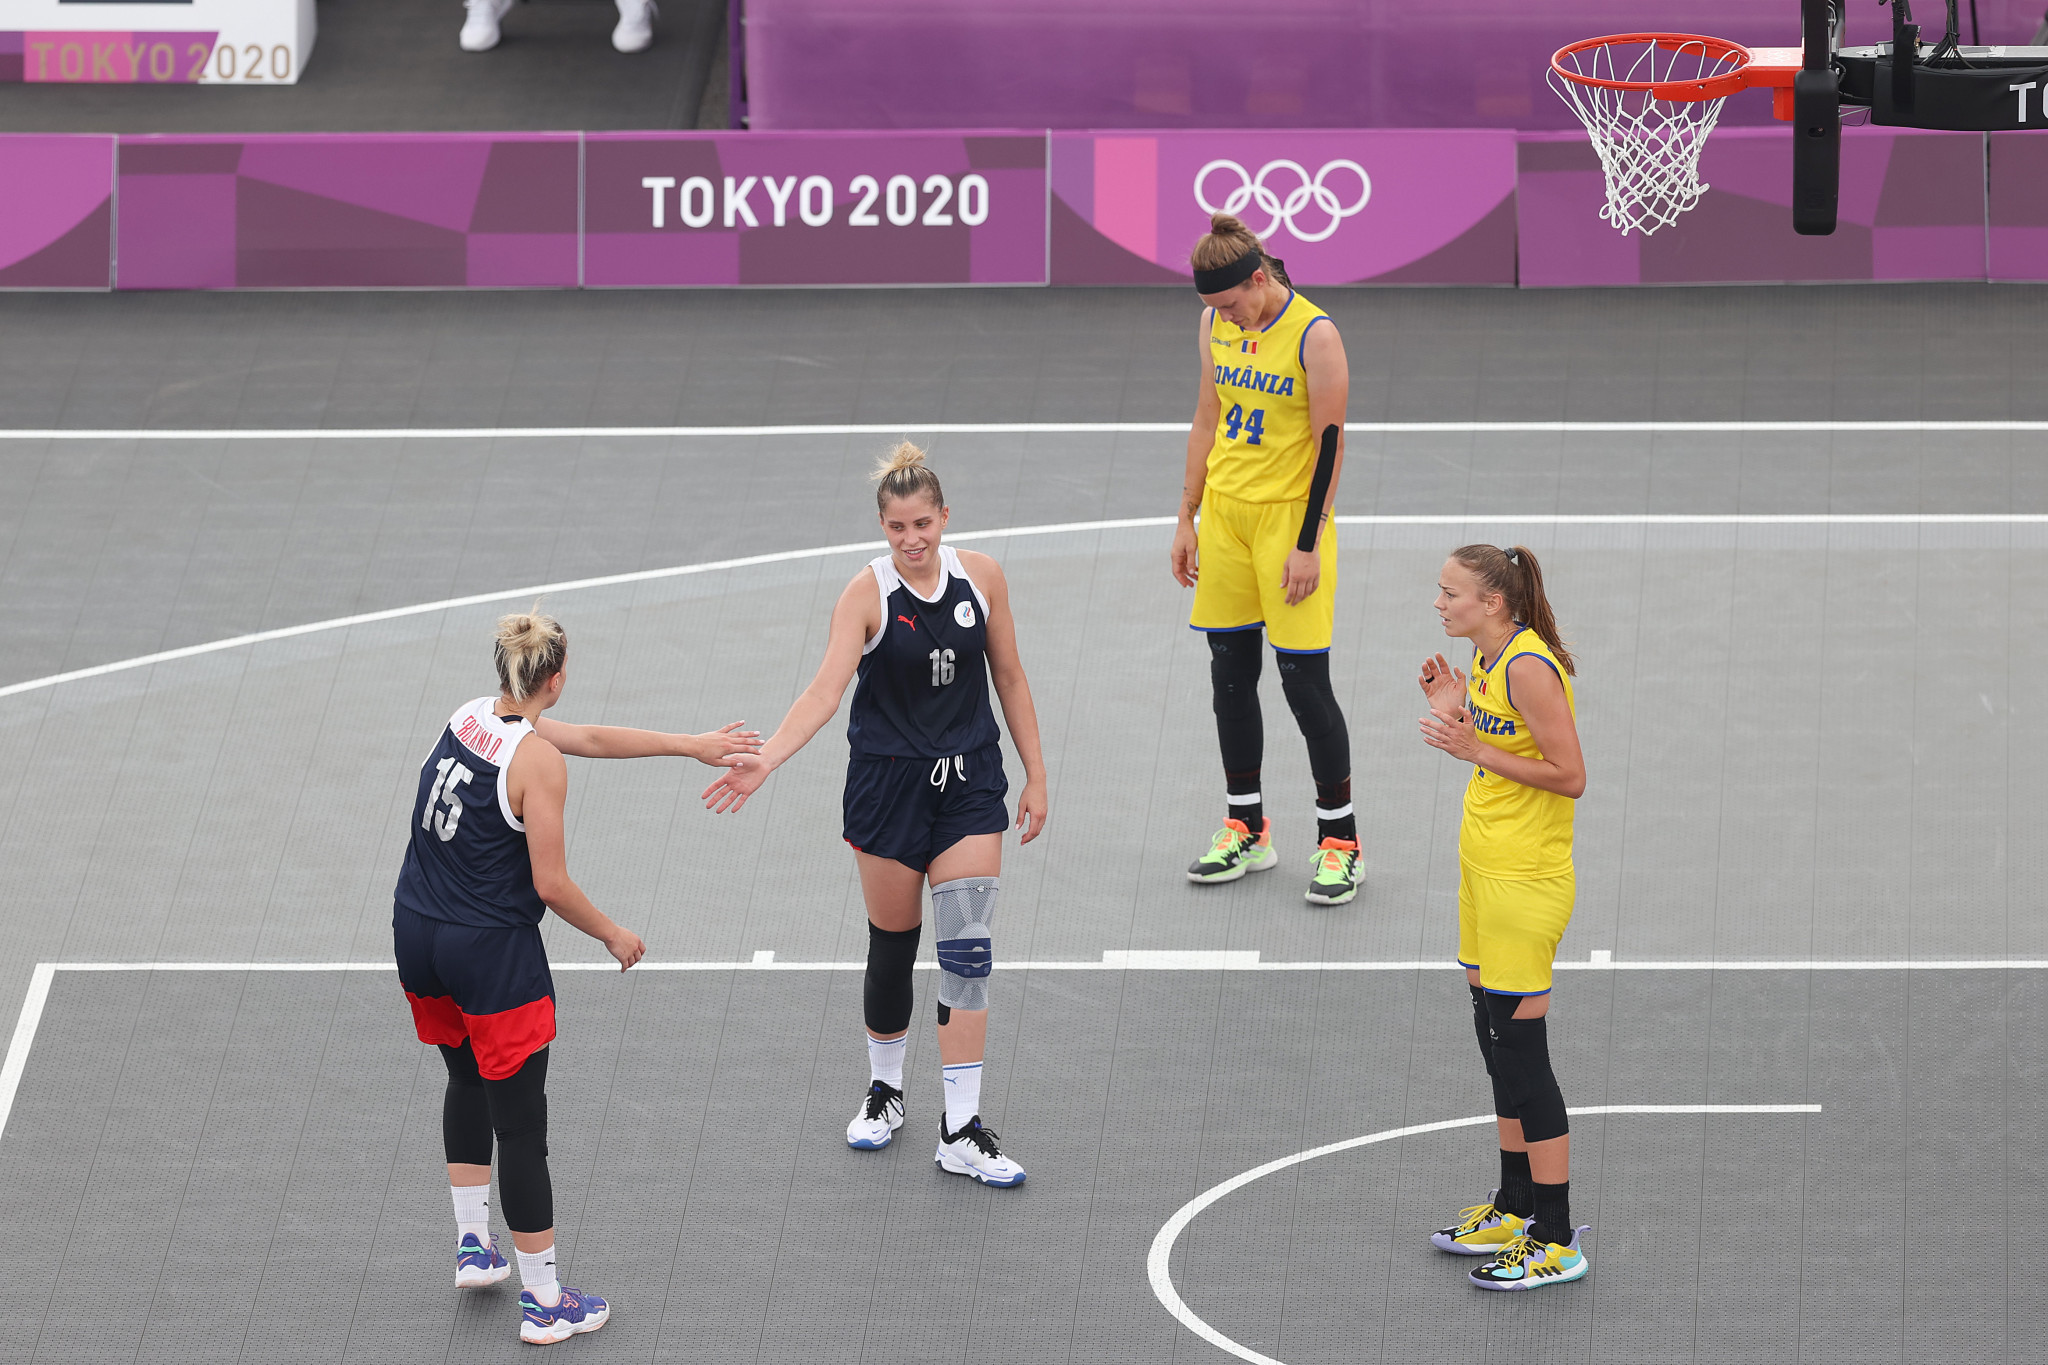 Twin sisters Evgeniia and Olga Frolkina, in blue, in action during the Tokyo 2020 3x3 basketball competition ©Getty Images